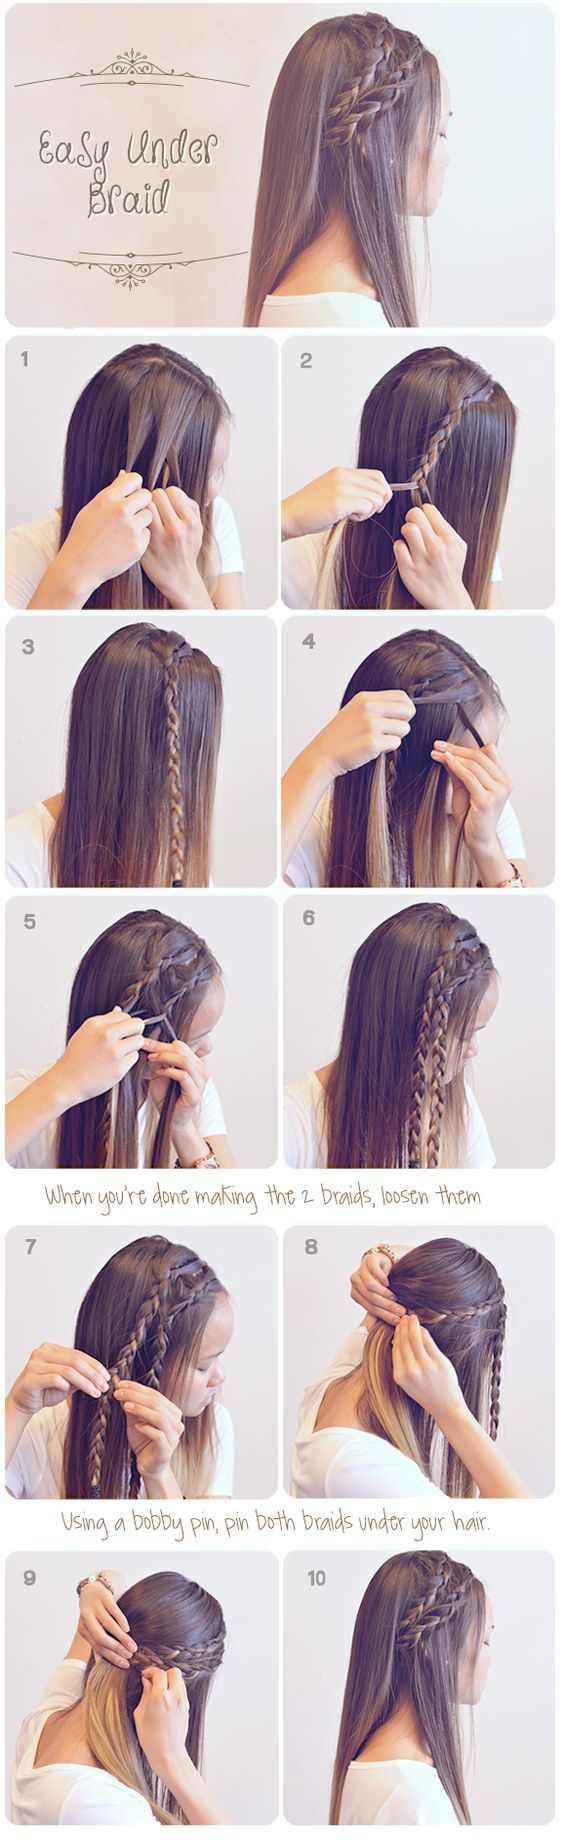 best 25+ concert hairstyles ideas on pinterest | concert hair